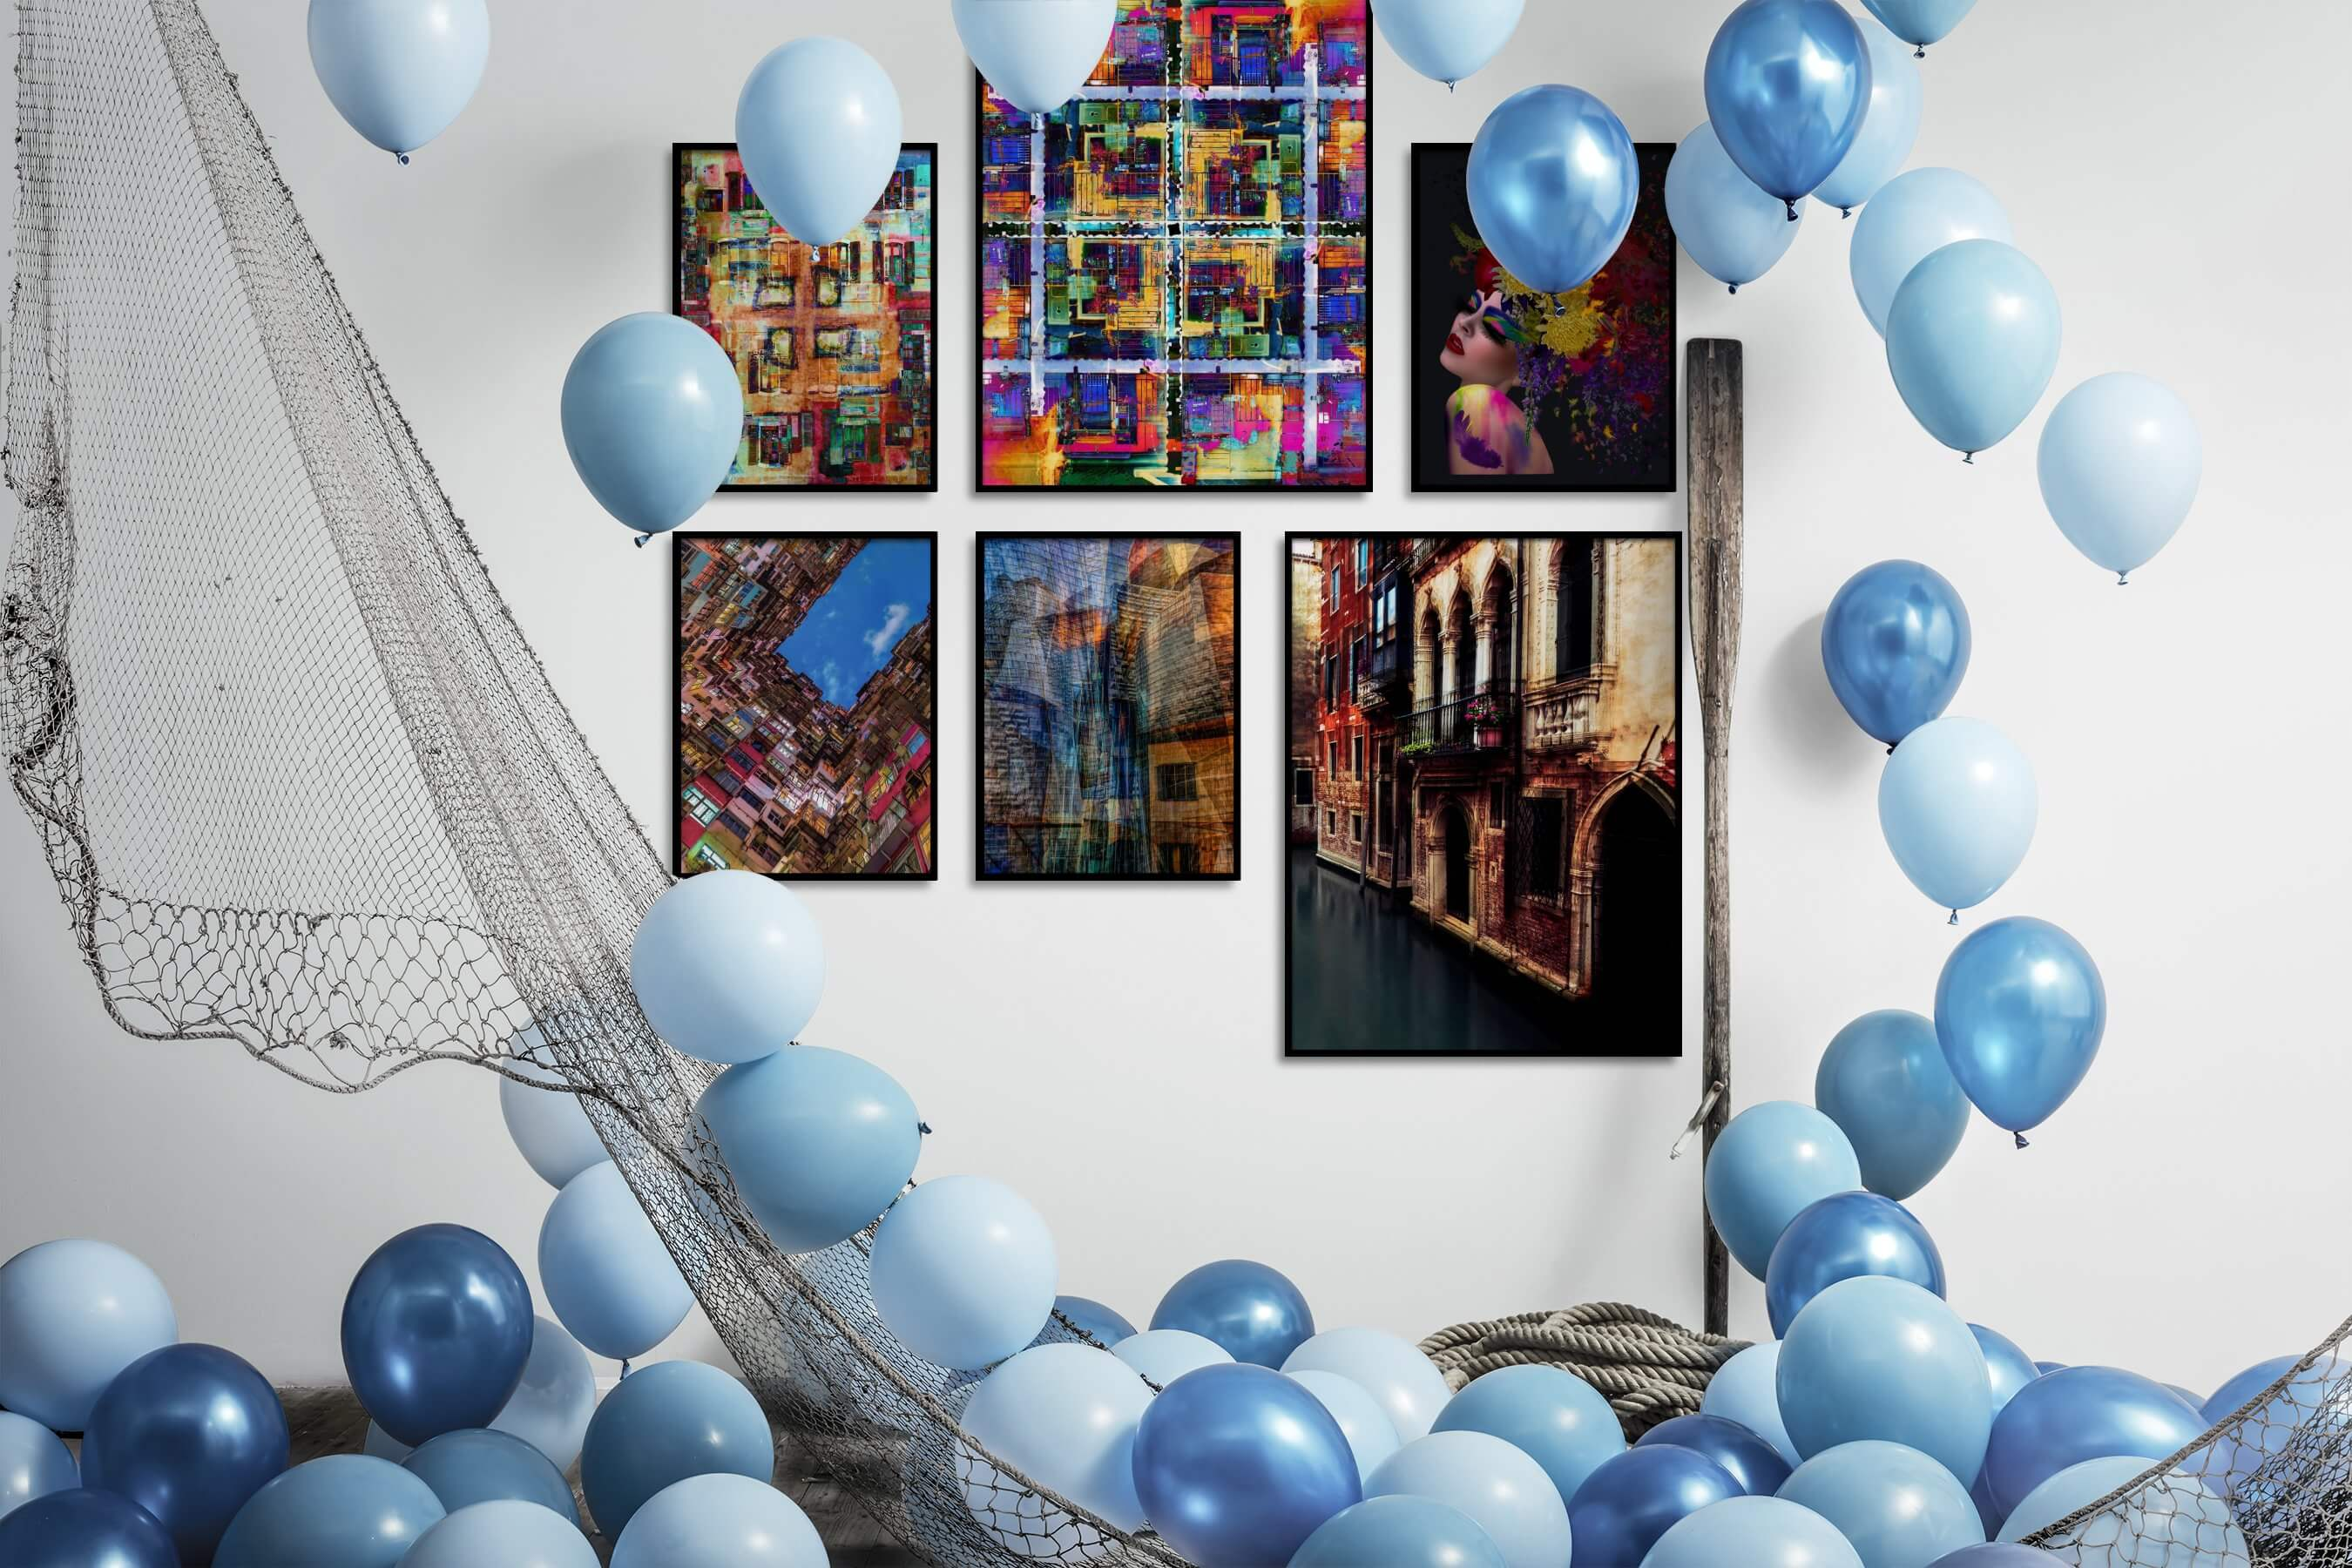 Gallery wall idea with six framed pictures arranged on a wall depicting Colorful, For the Maximalist, City Life, For the Moderate, Fashion & Beauty, and Dark Tones